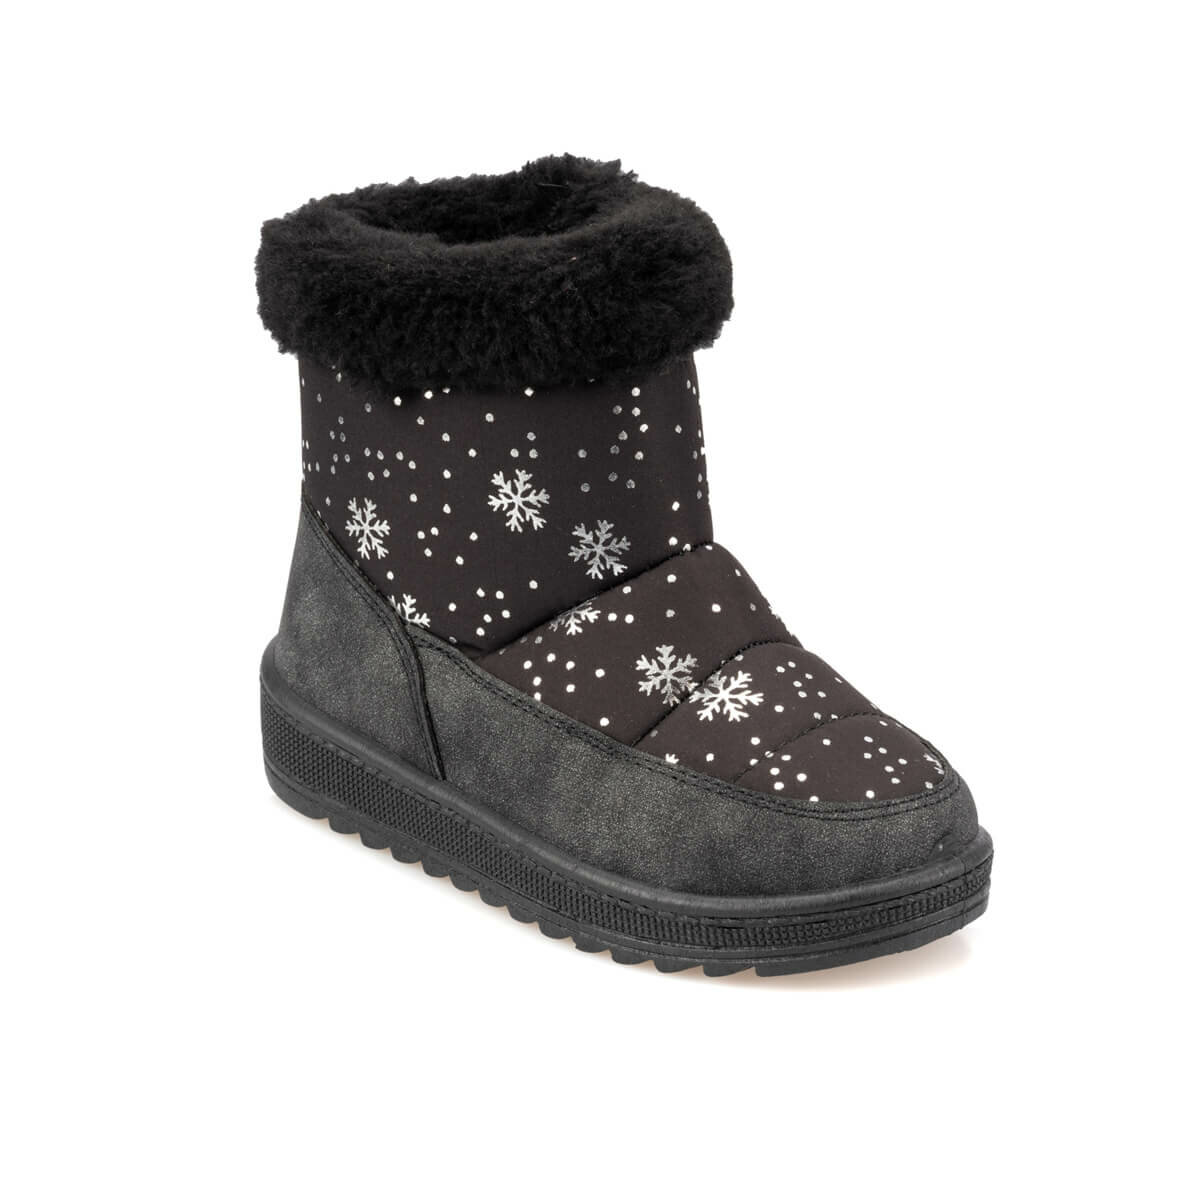 FLO 92.511804.P Black Female Child Boots Polaris